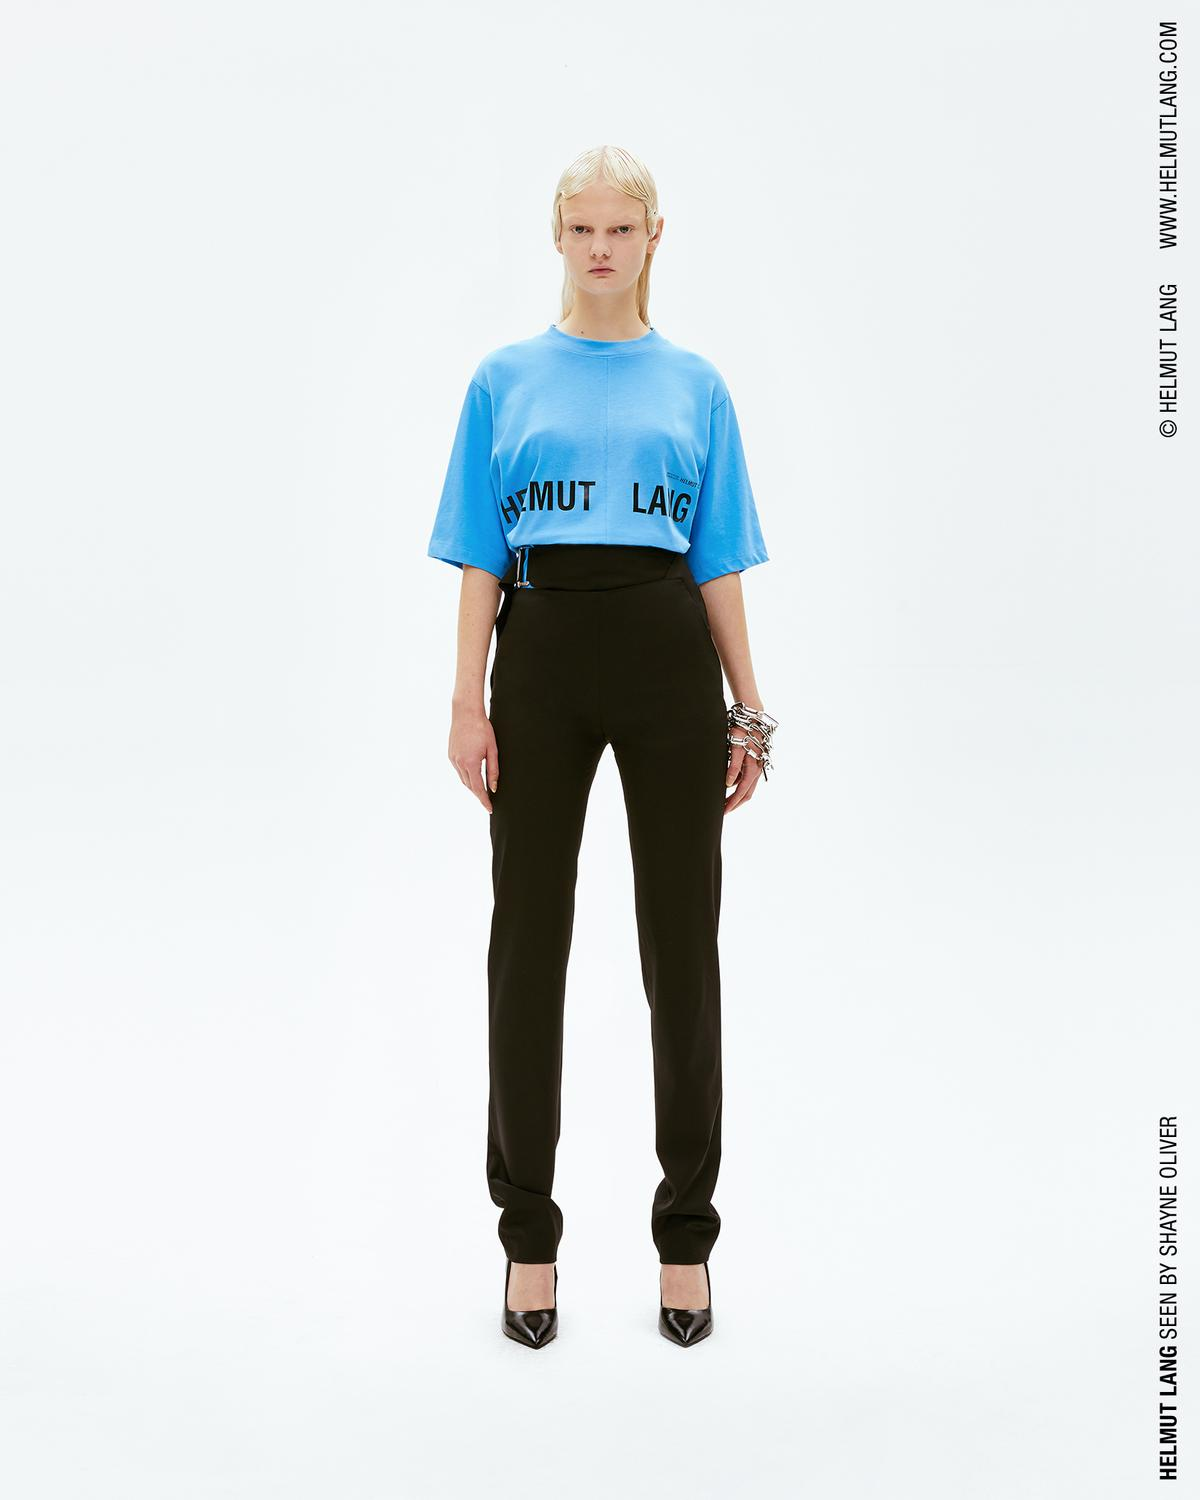 Helmut lang campaign print t shirt official site for On site t shirt printing